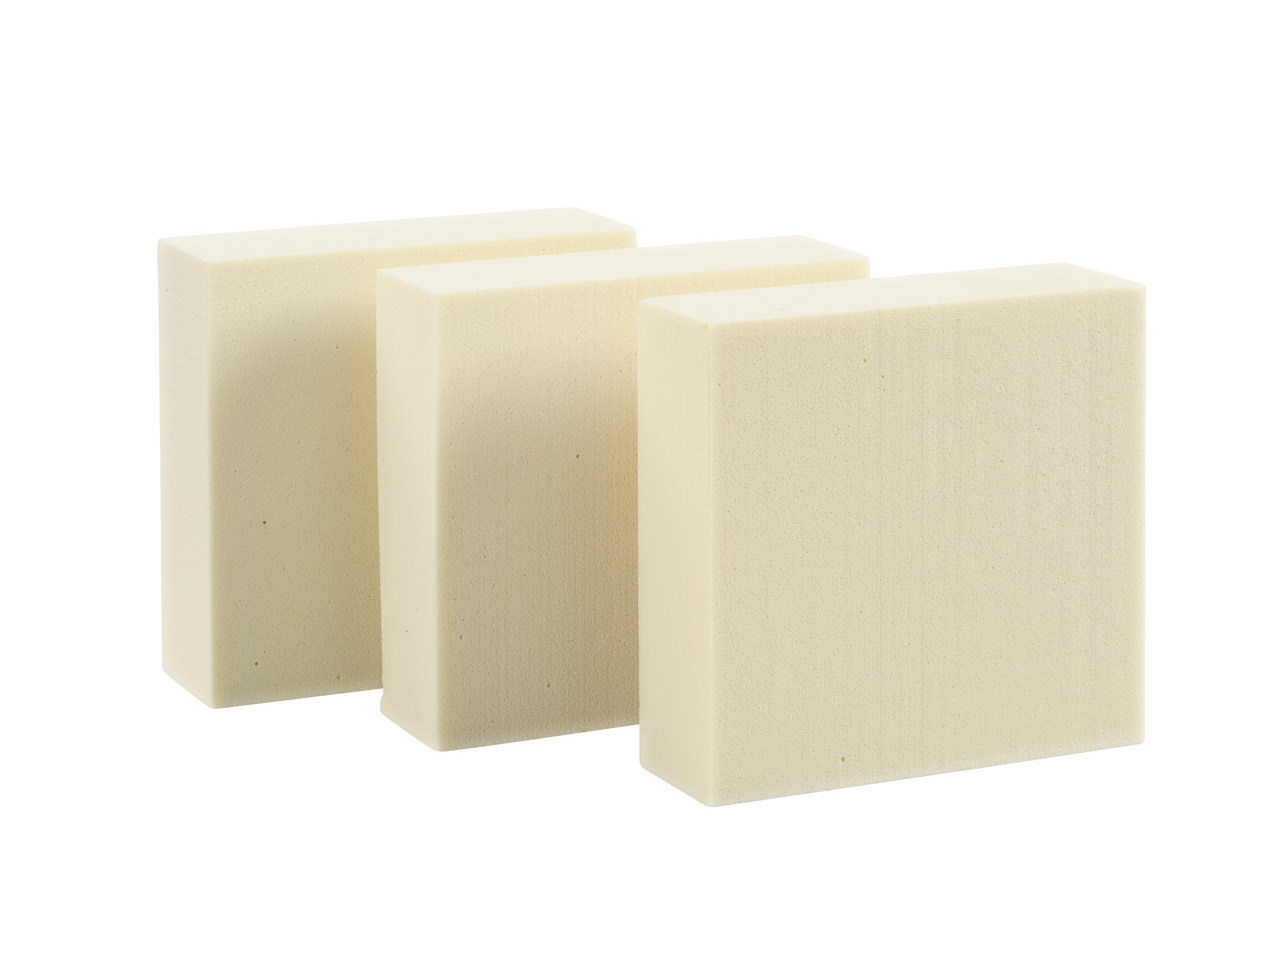 Sculpture Block Small Pack of 3    15x15x5cm